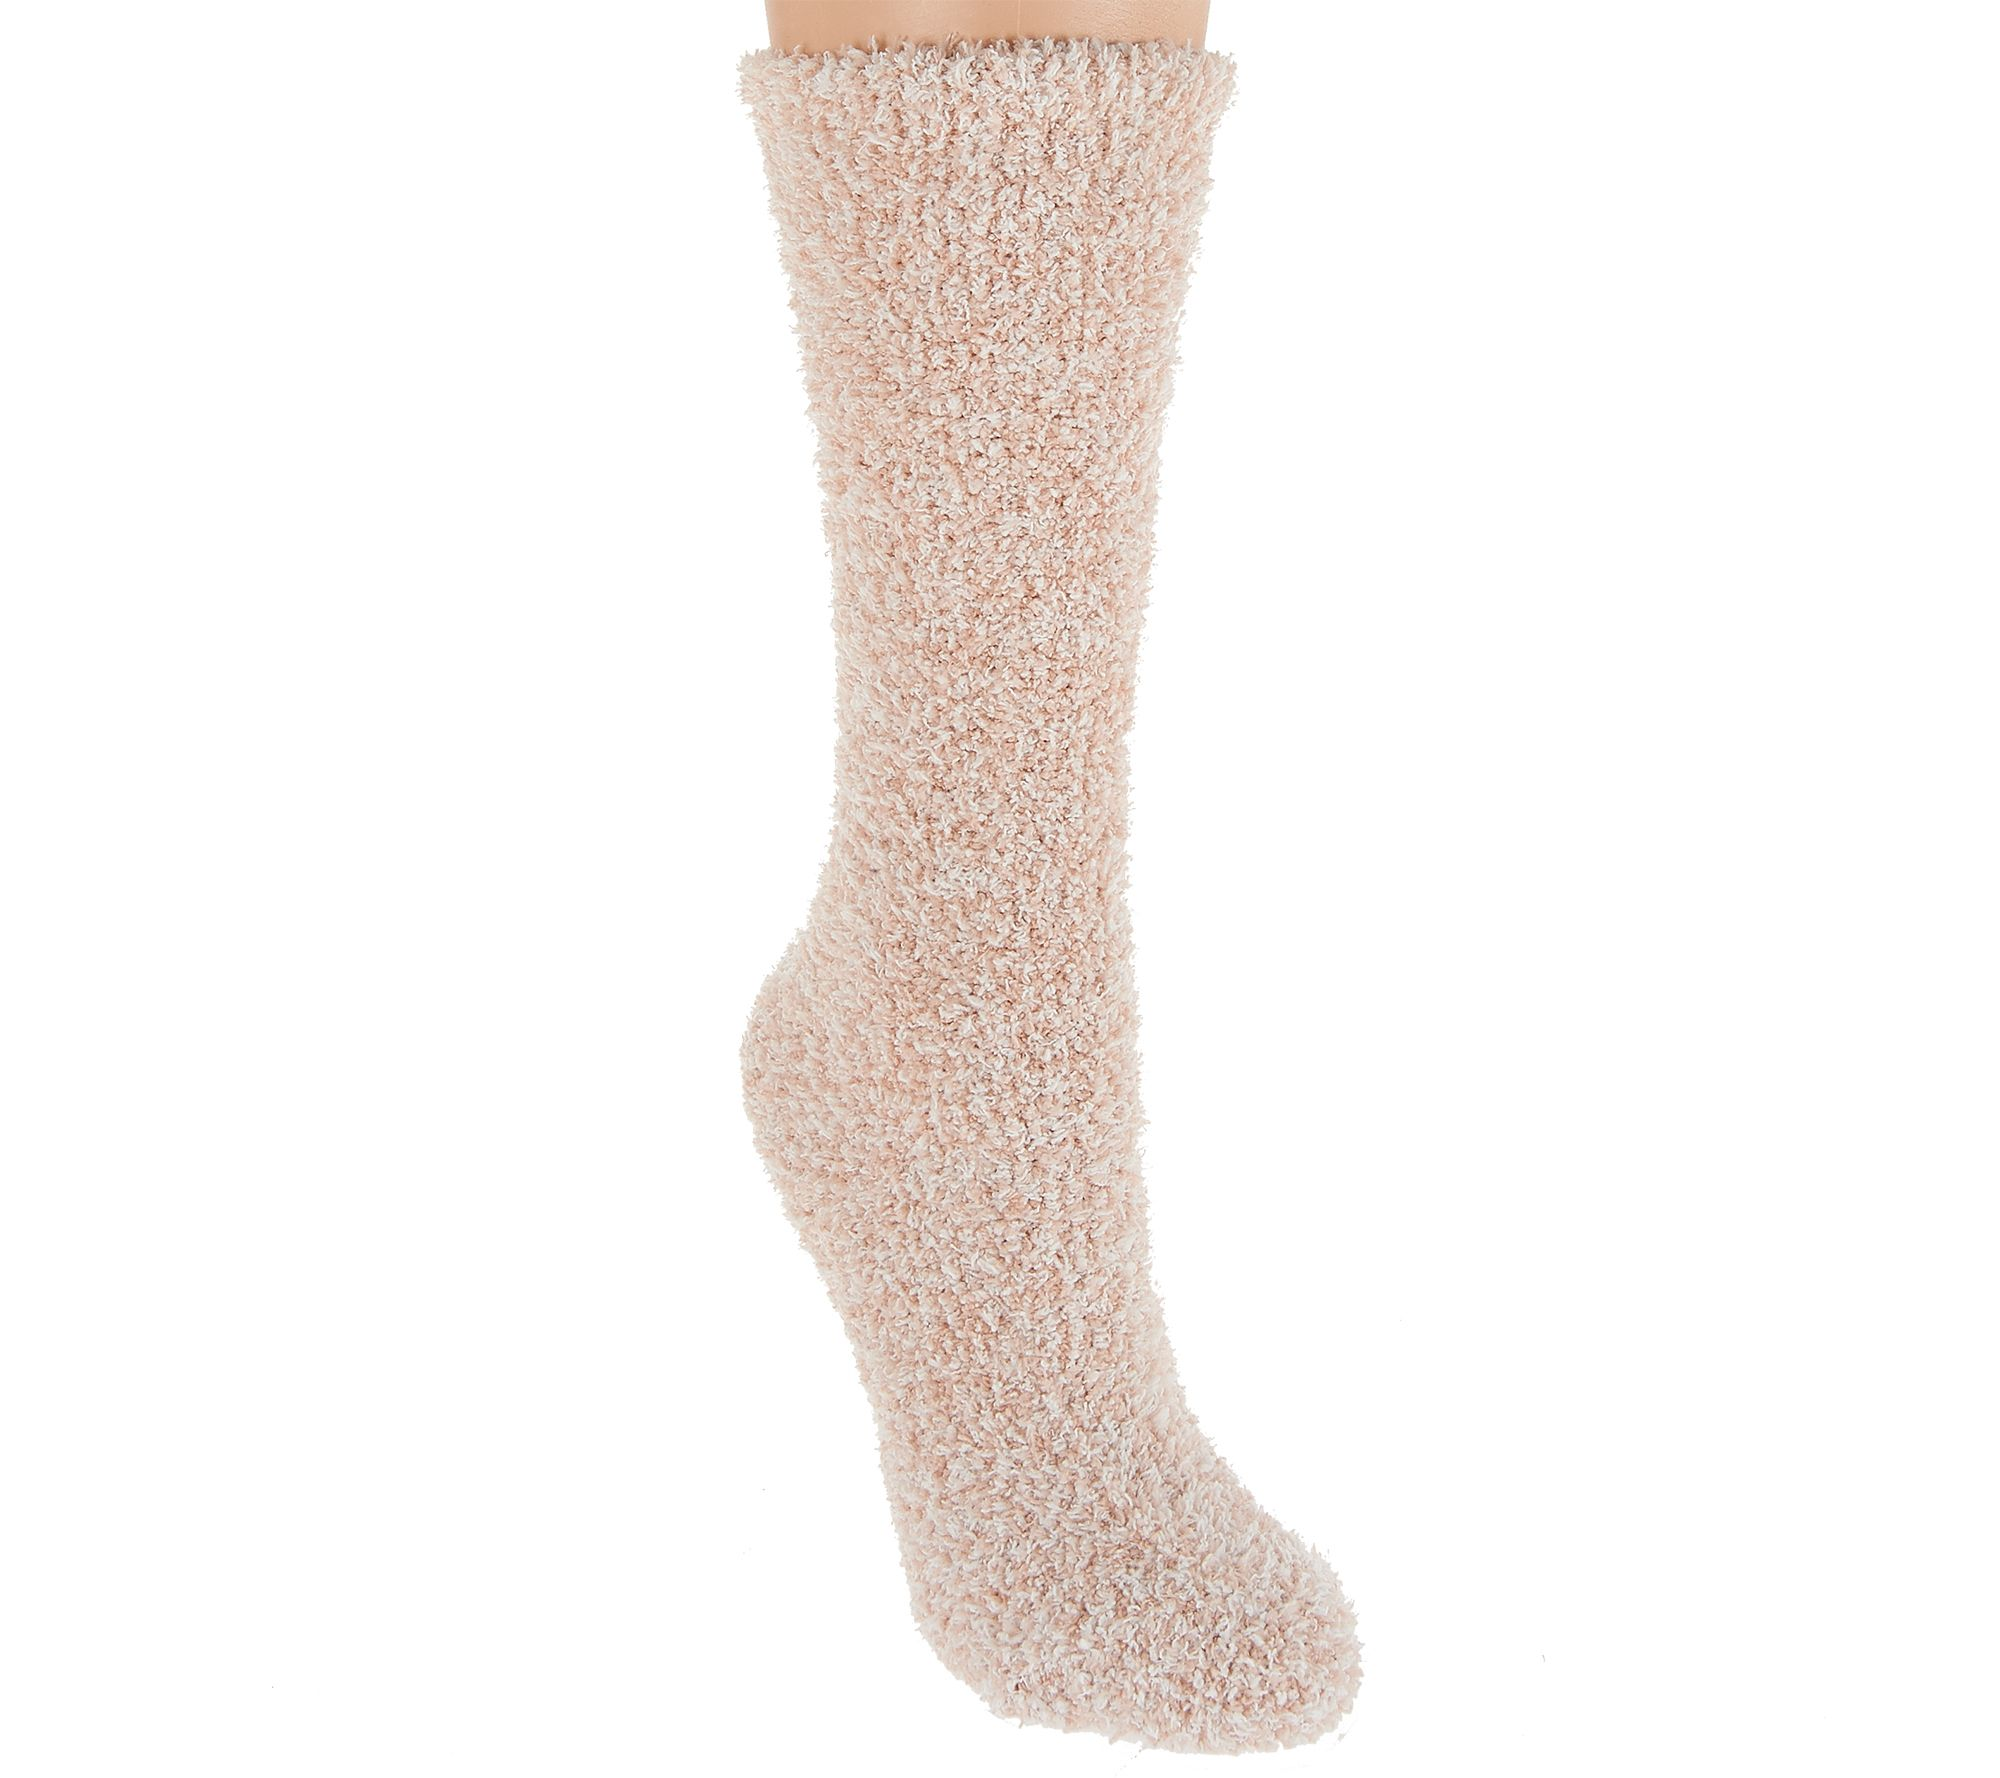 f7033e8633 Barefoot Dreams Cozychic Heathered Women s Socks - Page 1 — QVC.com